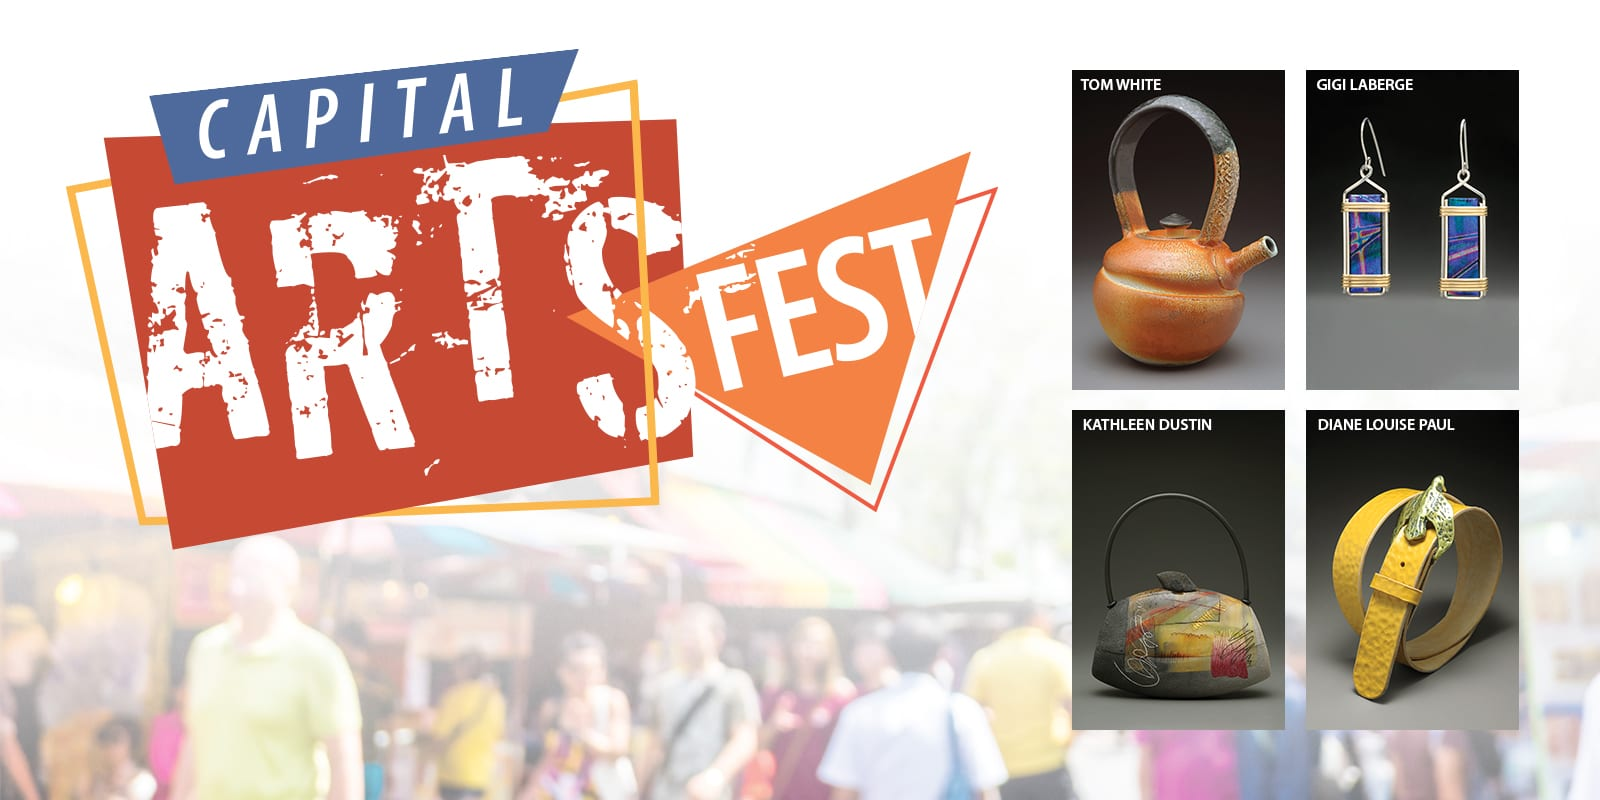 The Capital Arts Fest is on Main Street in Concord NH during September 28 - 30.